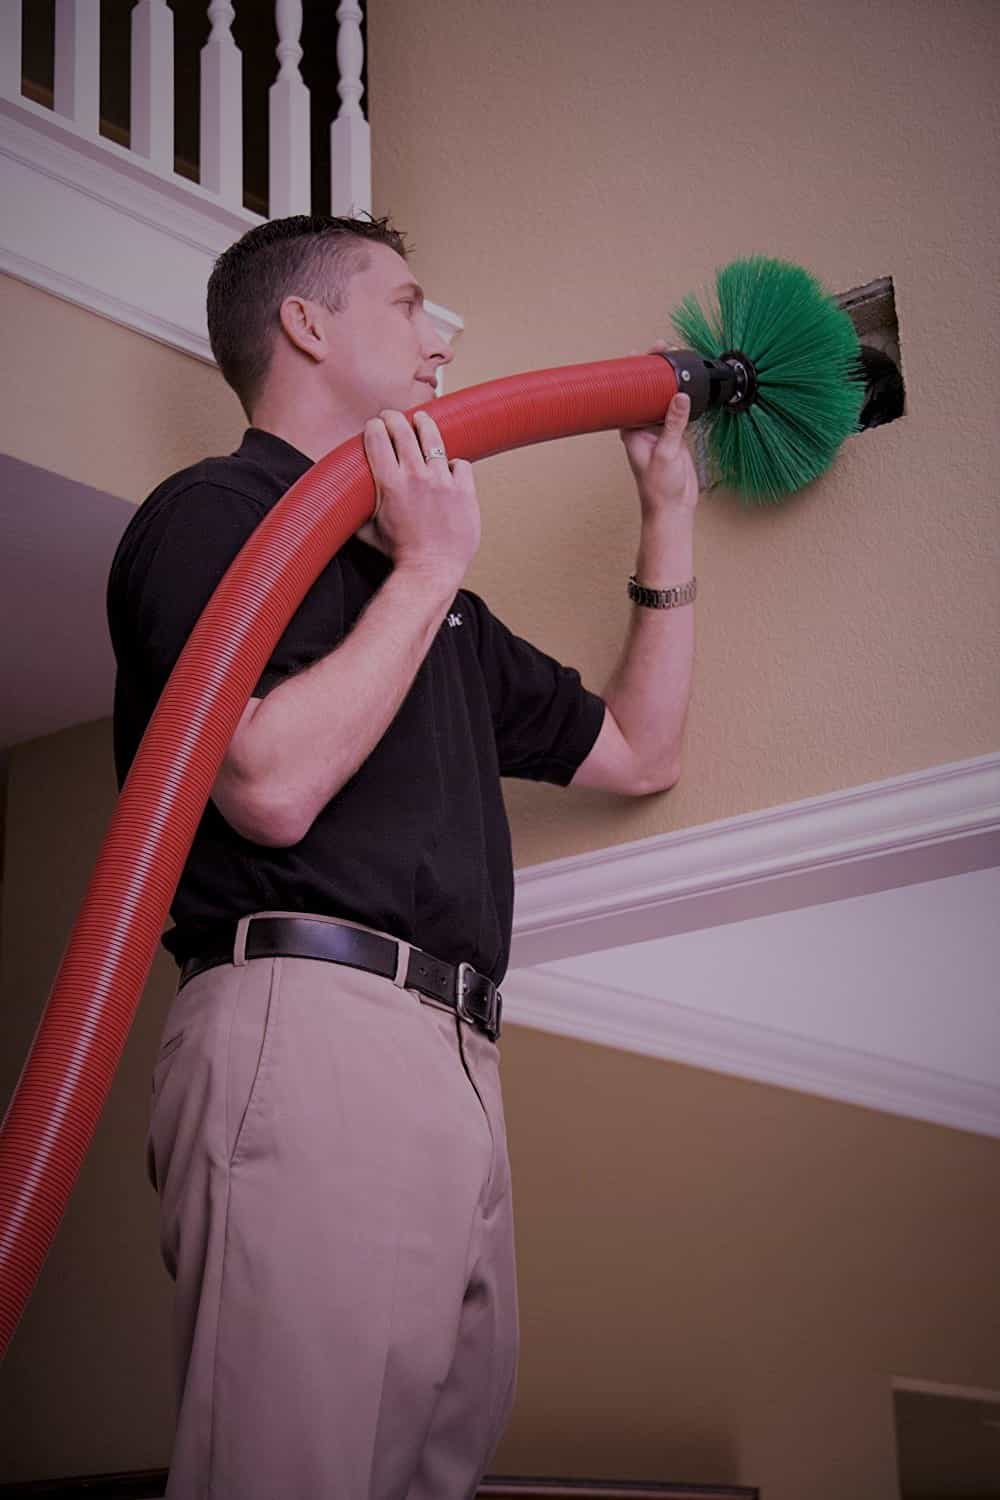 air-duct-cleaning-leads-janitorial-leads-pro